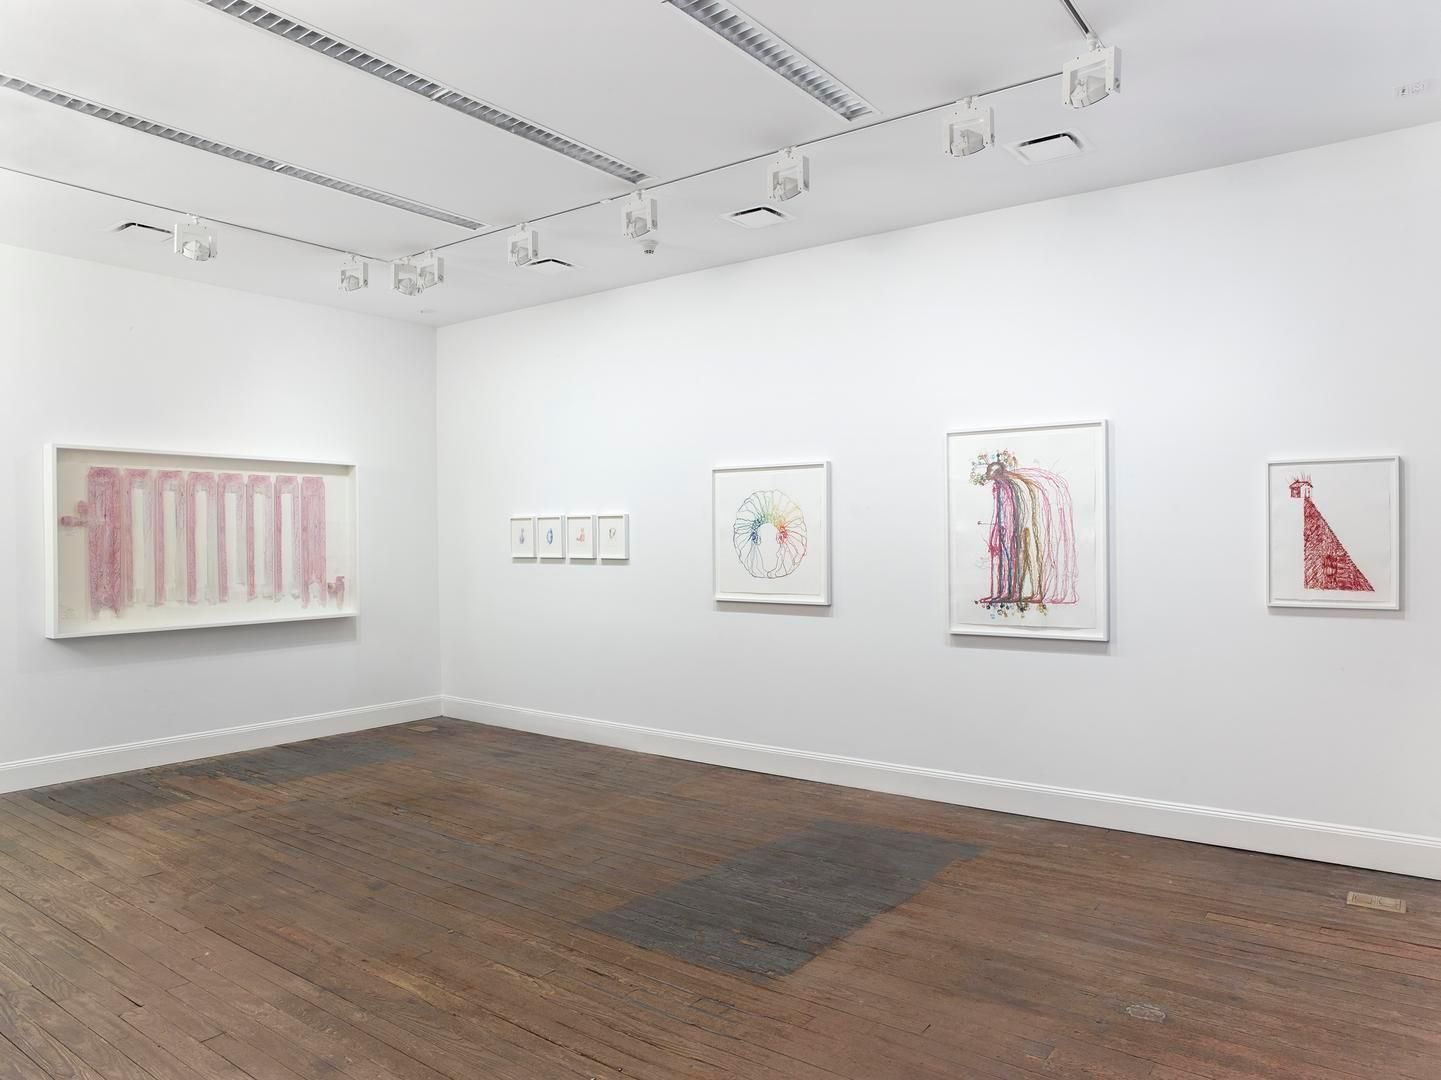 Drawings Installation view, 201 Chrystie Street, New York